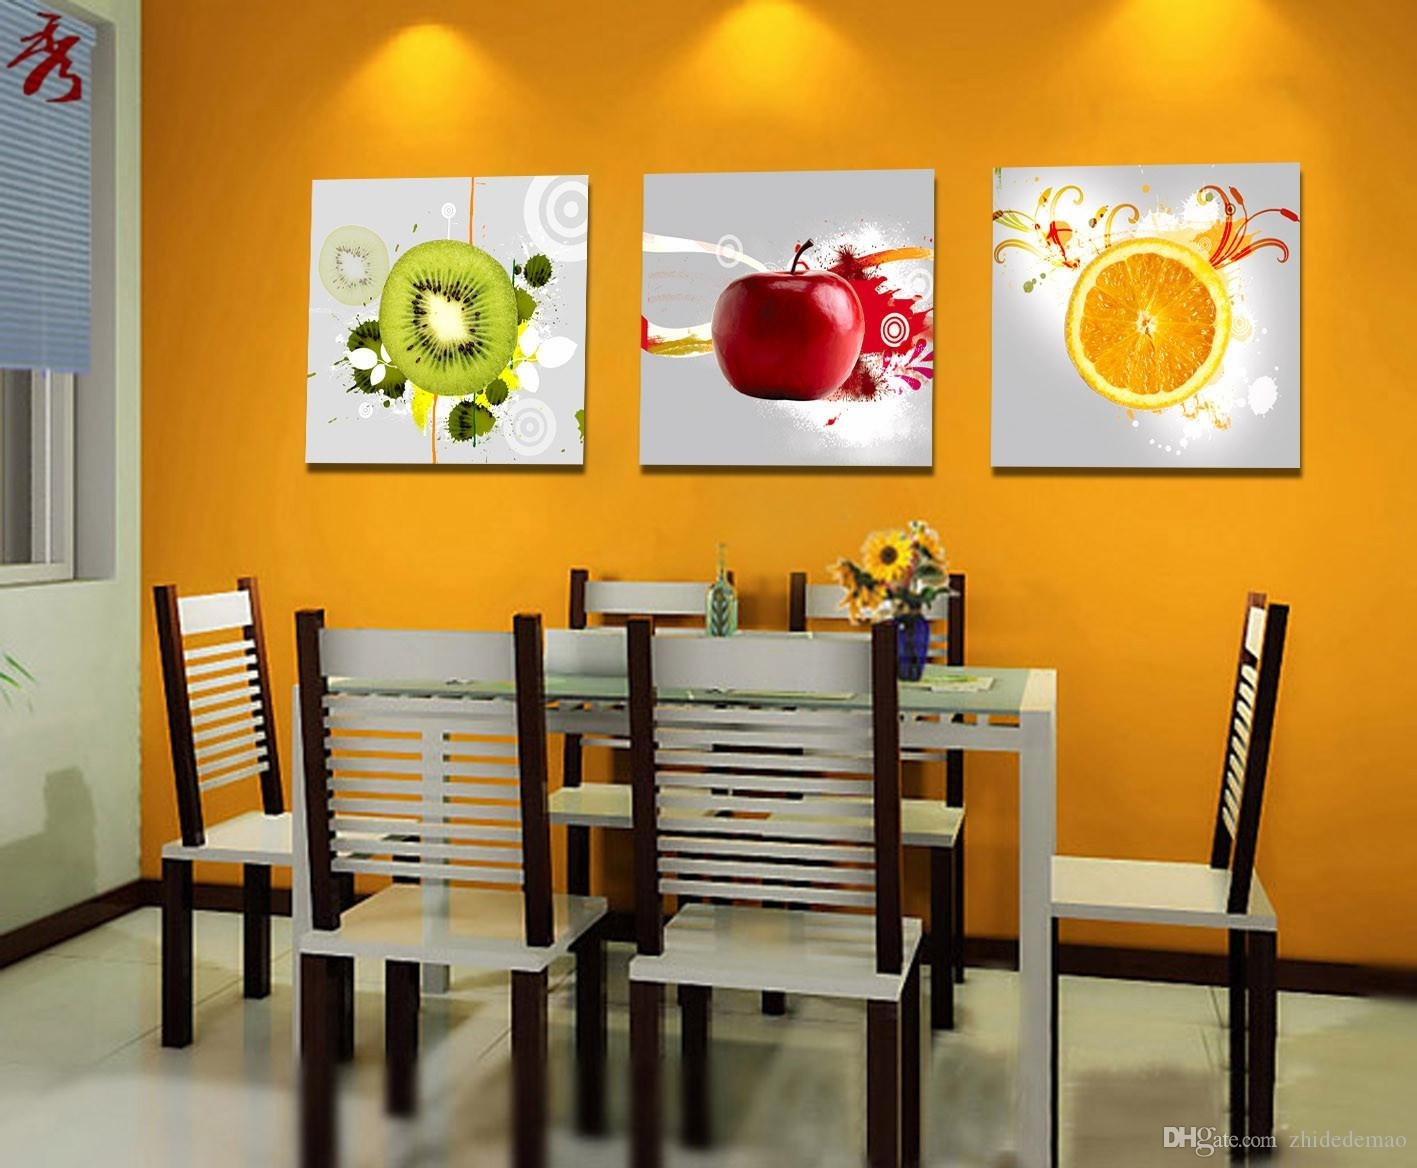 Canvas Wall Art For Dining Room – Alliancemv With Regard To Most Up To Date Canvas Wall Art For Dining Room (View 6 of 15)